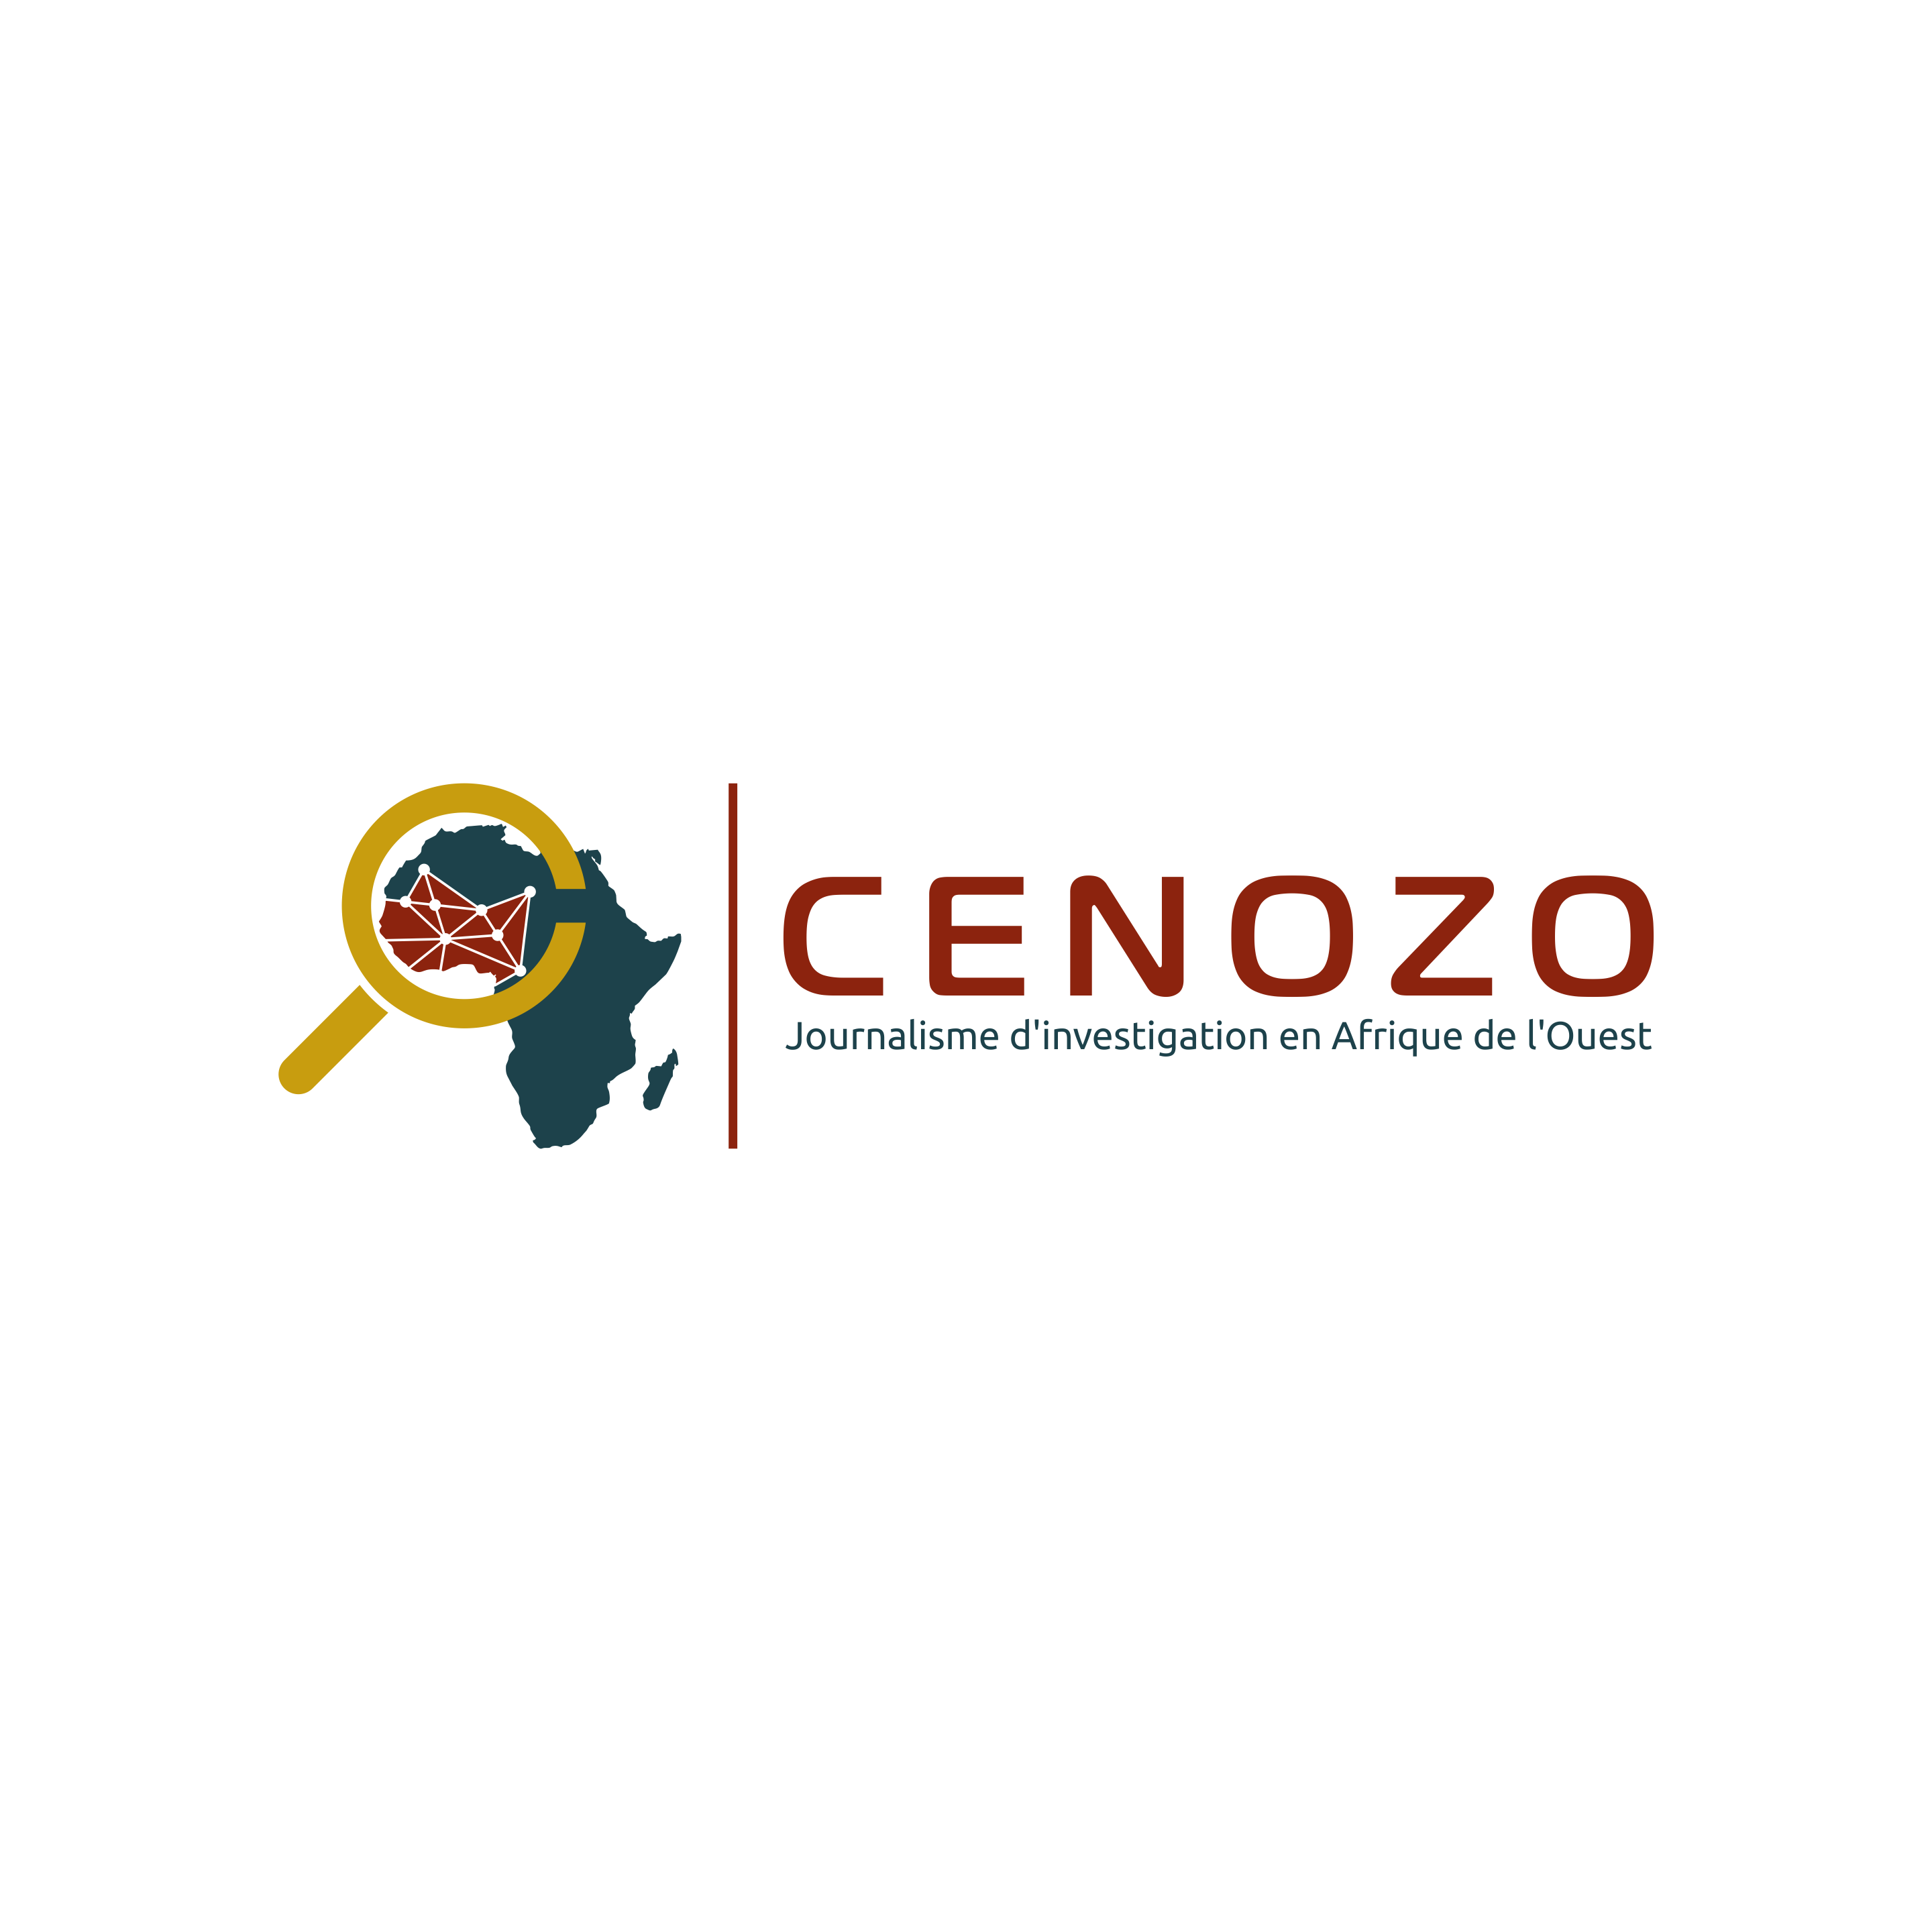 CENOZO looking for a serious, professional logo